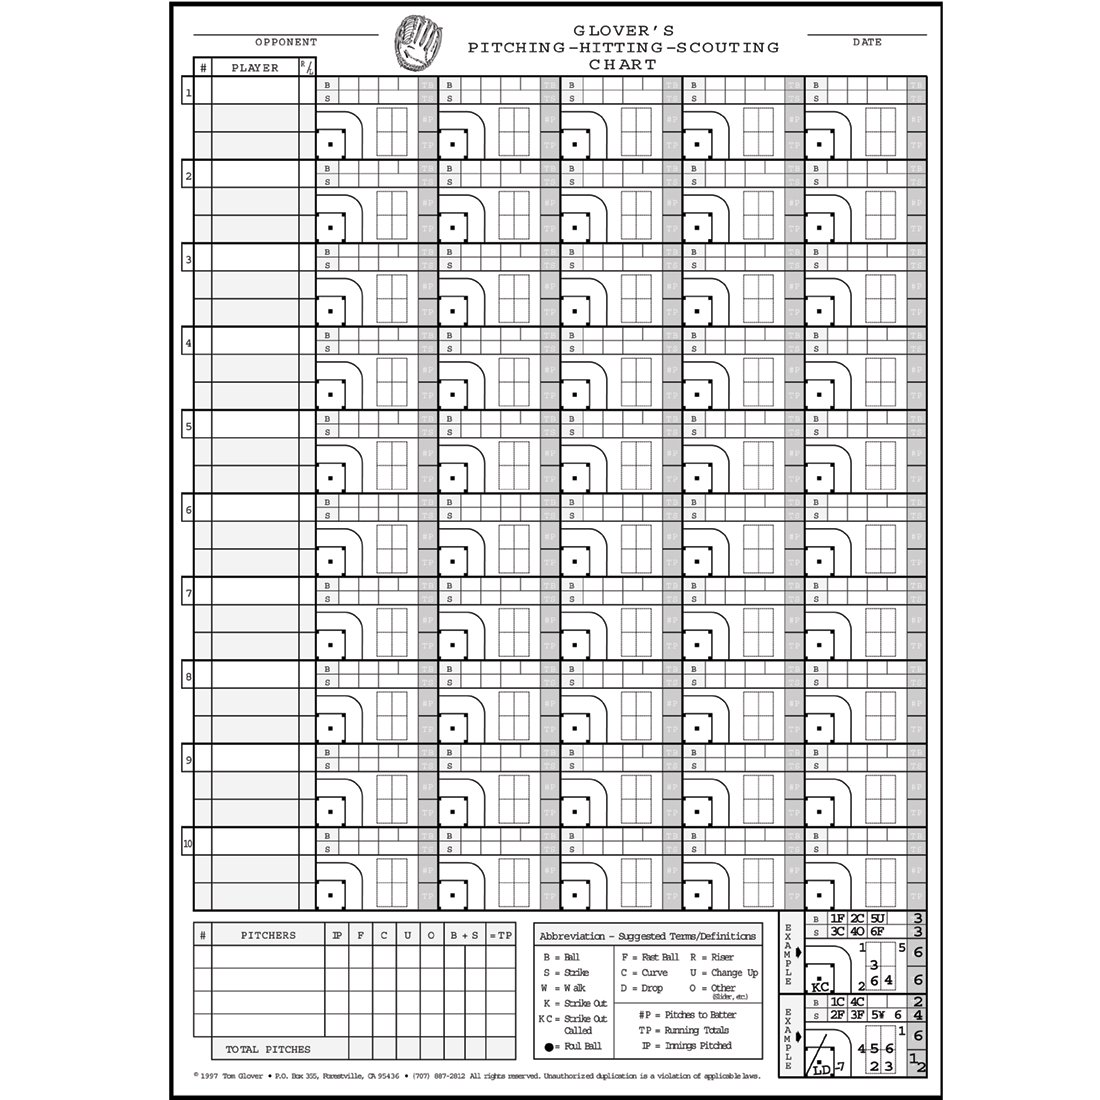 baseball pitching chart template - pitching charts pitching chart for clipboard baseball